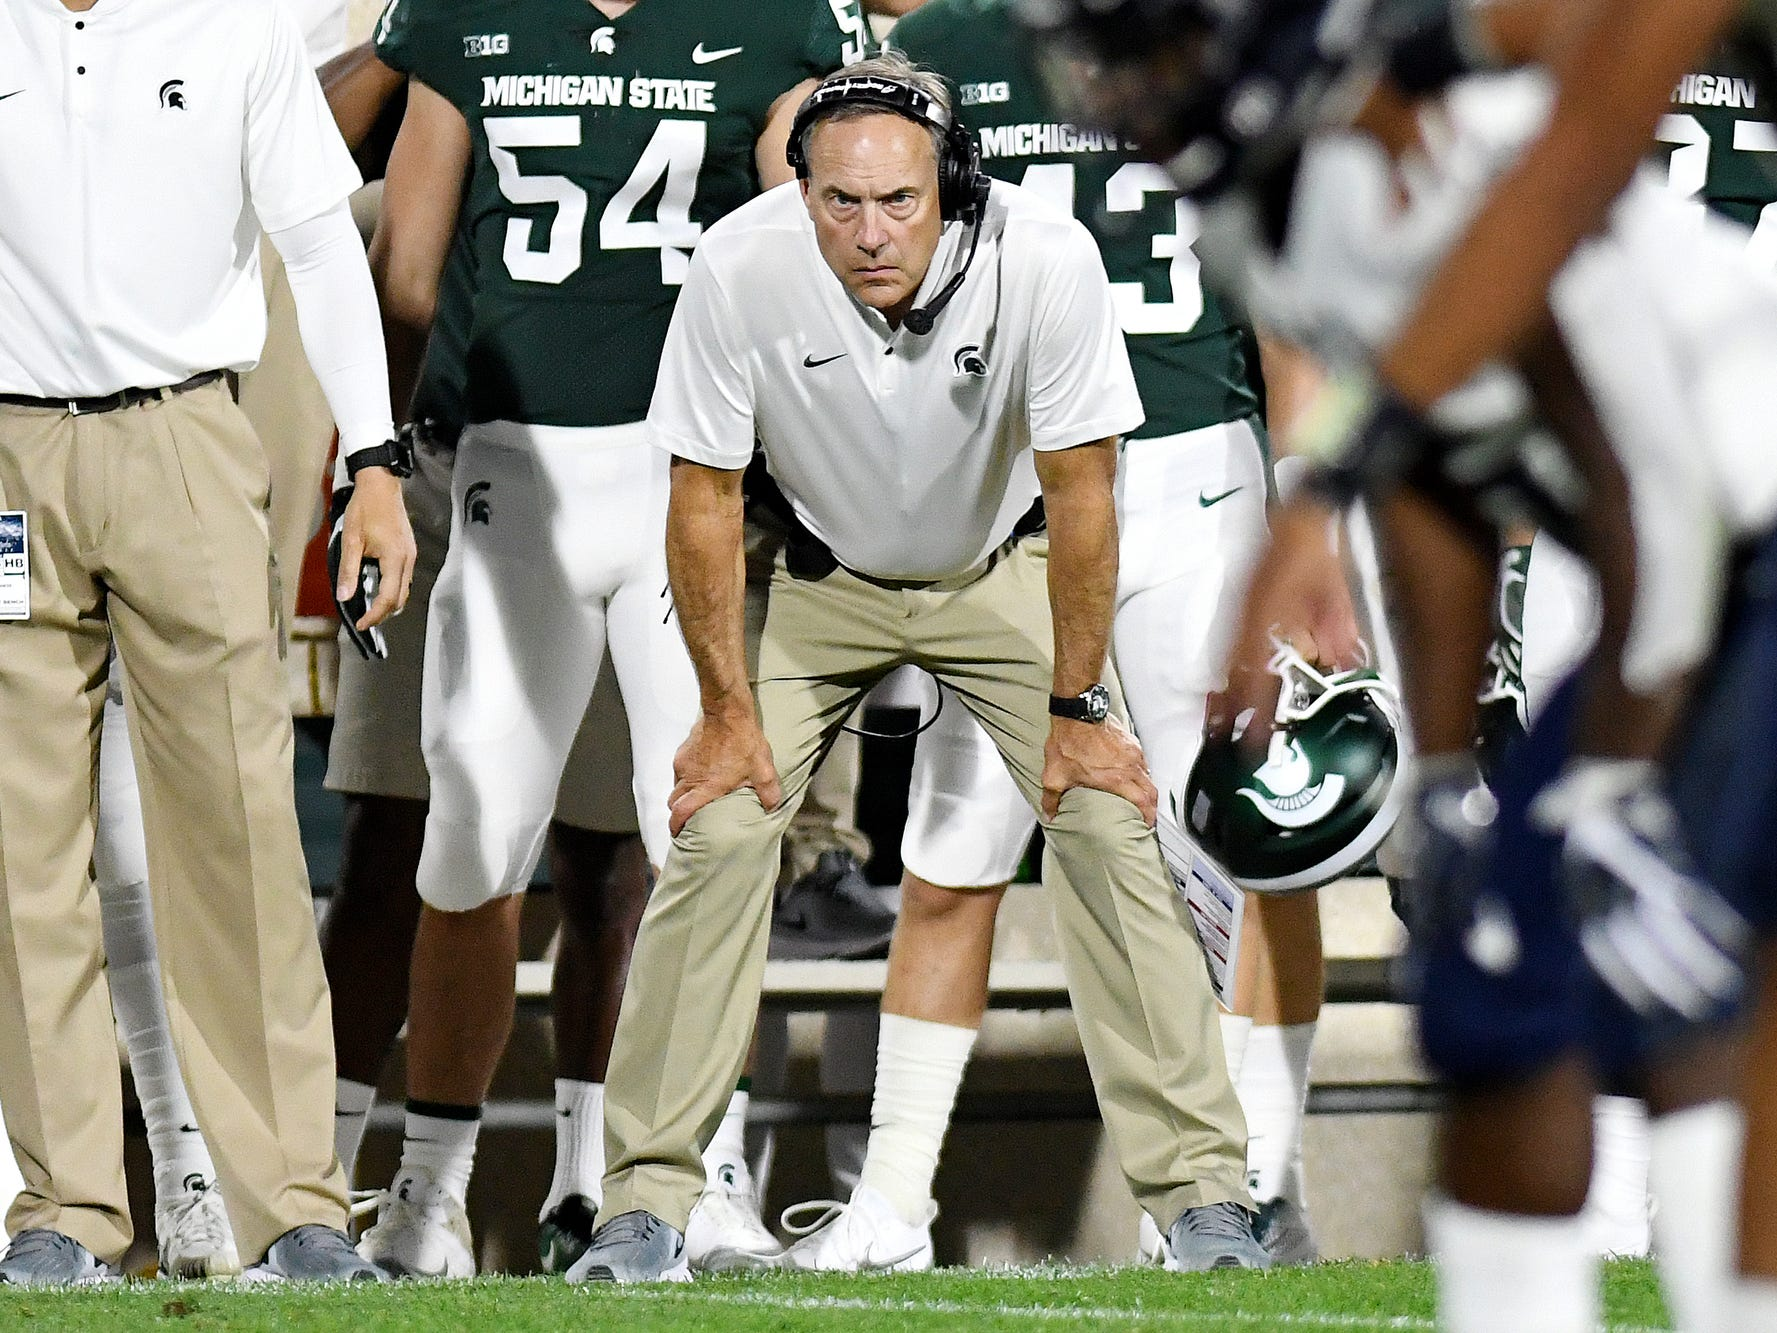 Michigan State's head coach Mark Dantonio looks on before Utah State snaps the ball during the third quarter on Friday, Aug. 31, 2018, at Spartan Stadium in East Lansing.